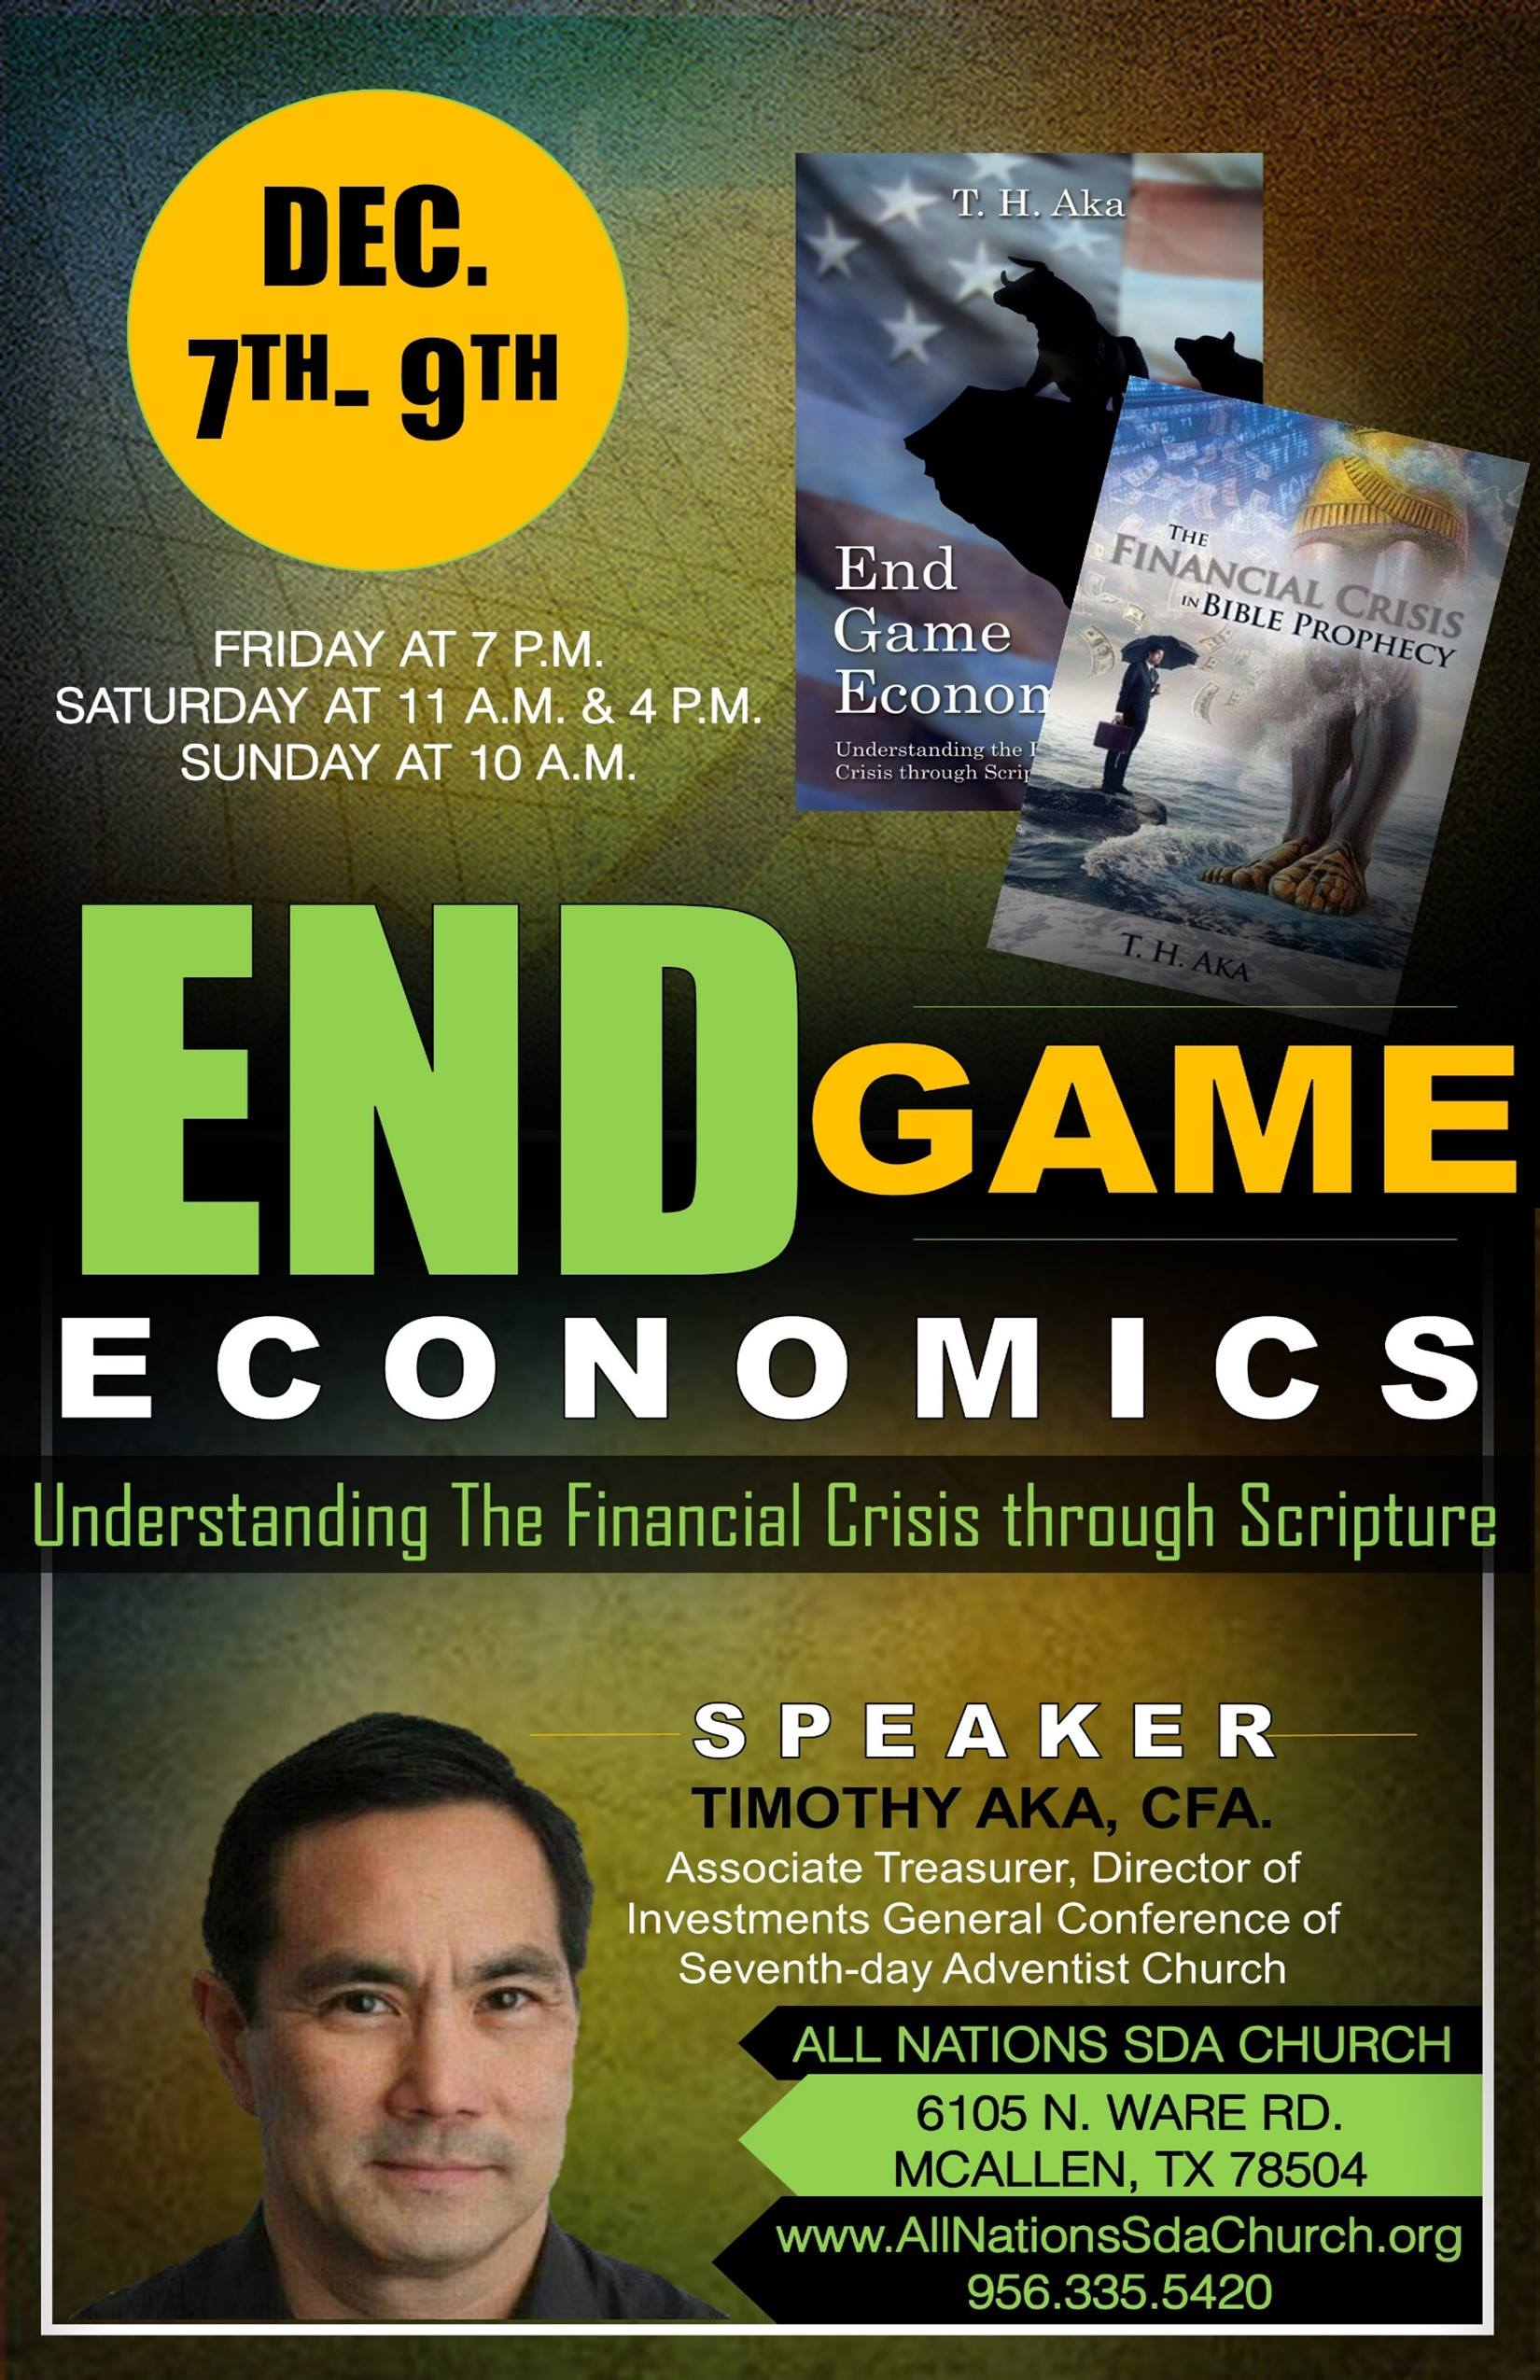 End Game Economics flyer for event in Mcallen Texas December 7-9th.